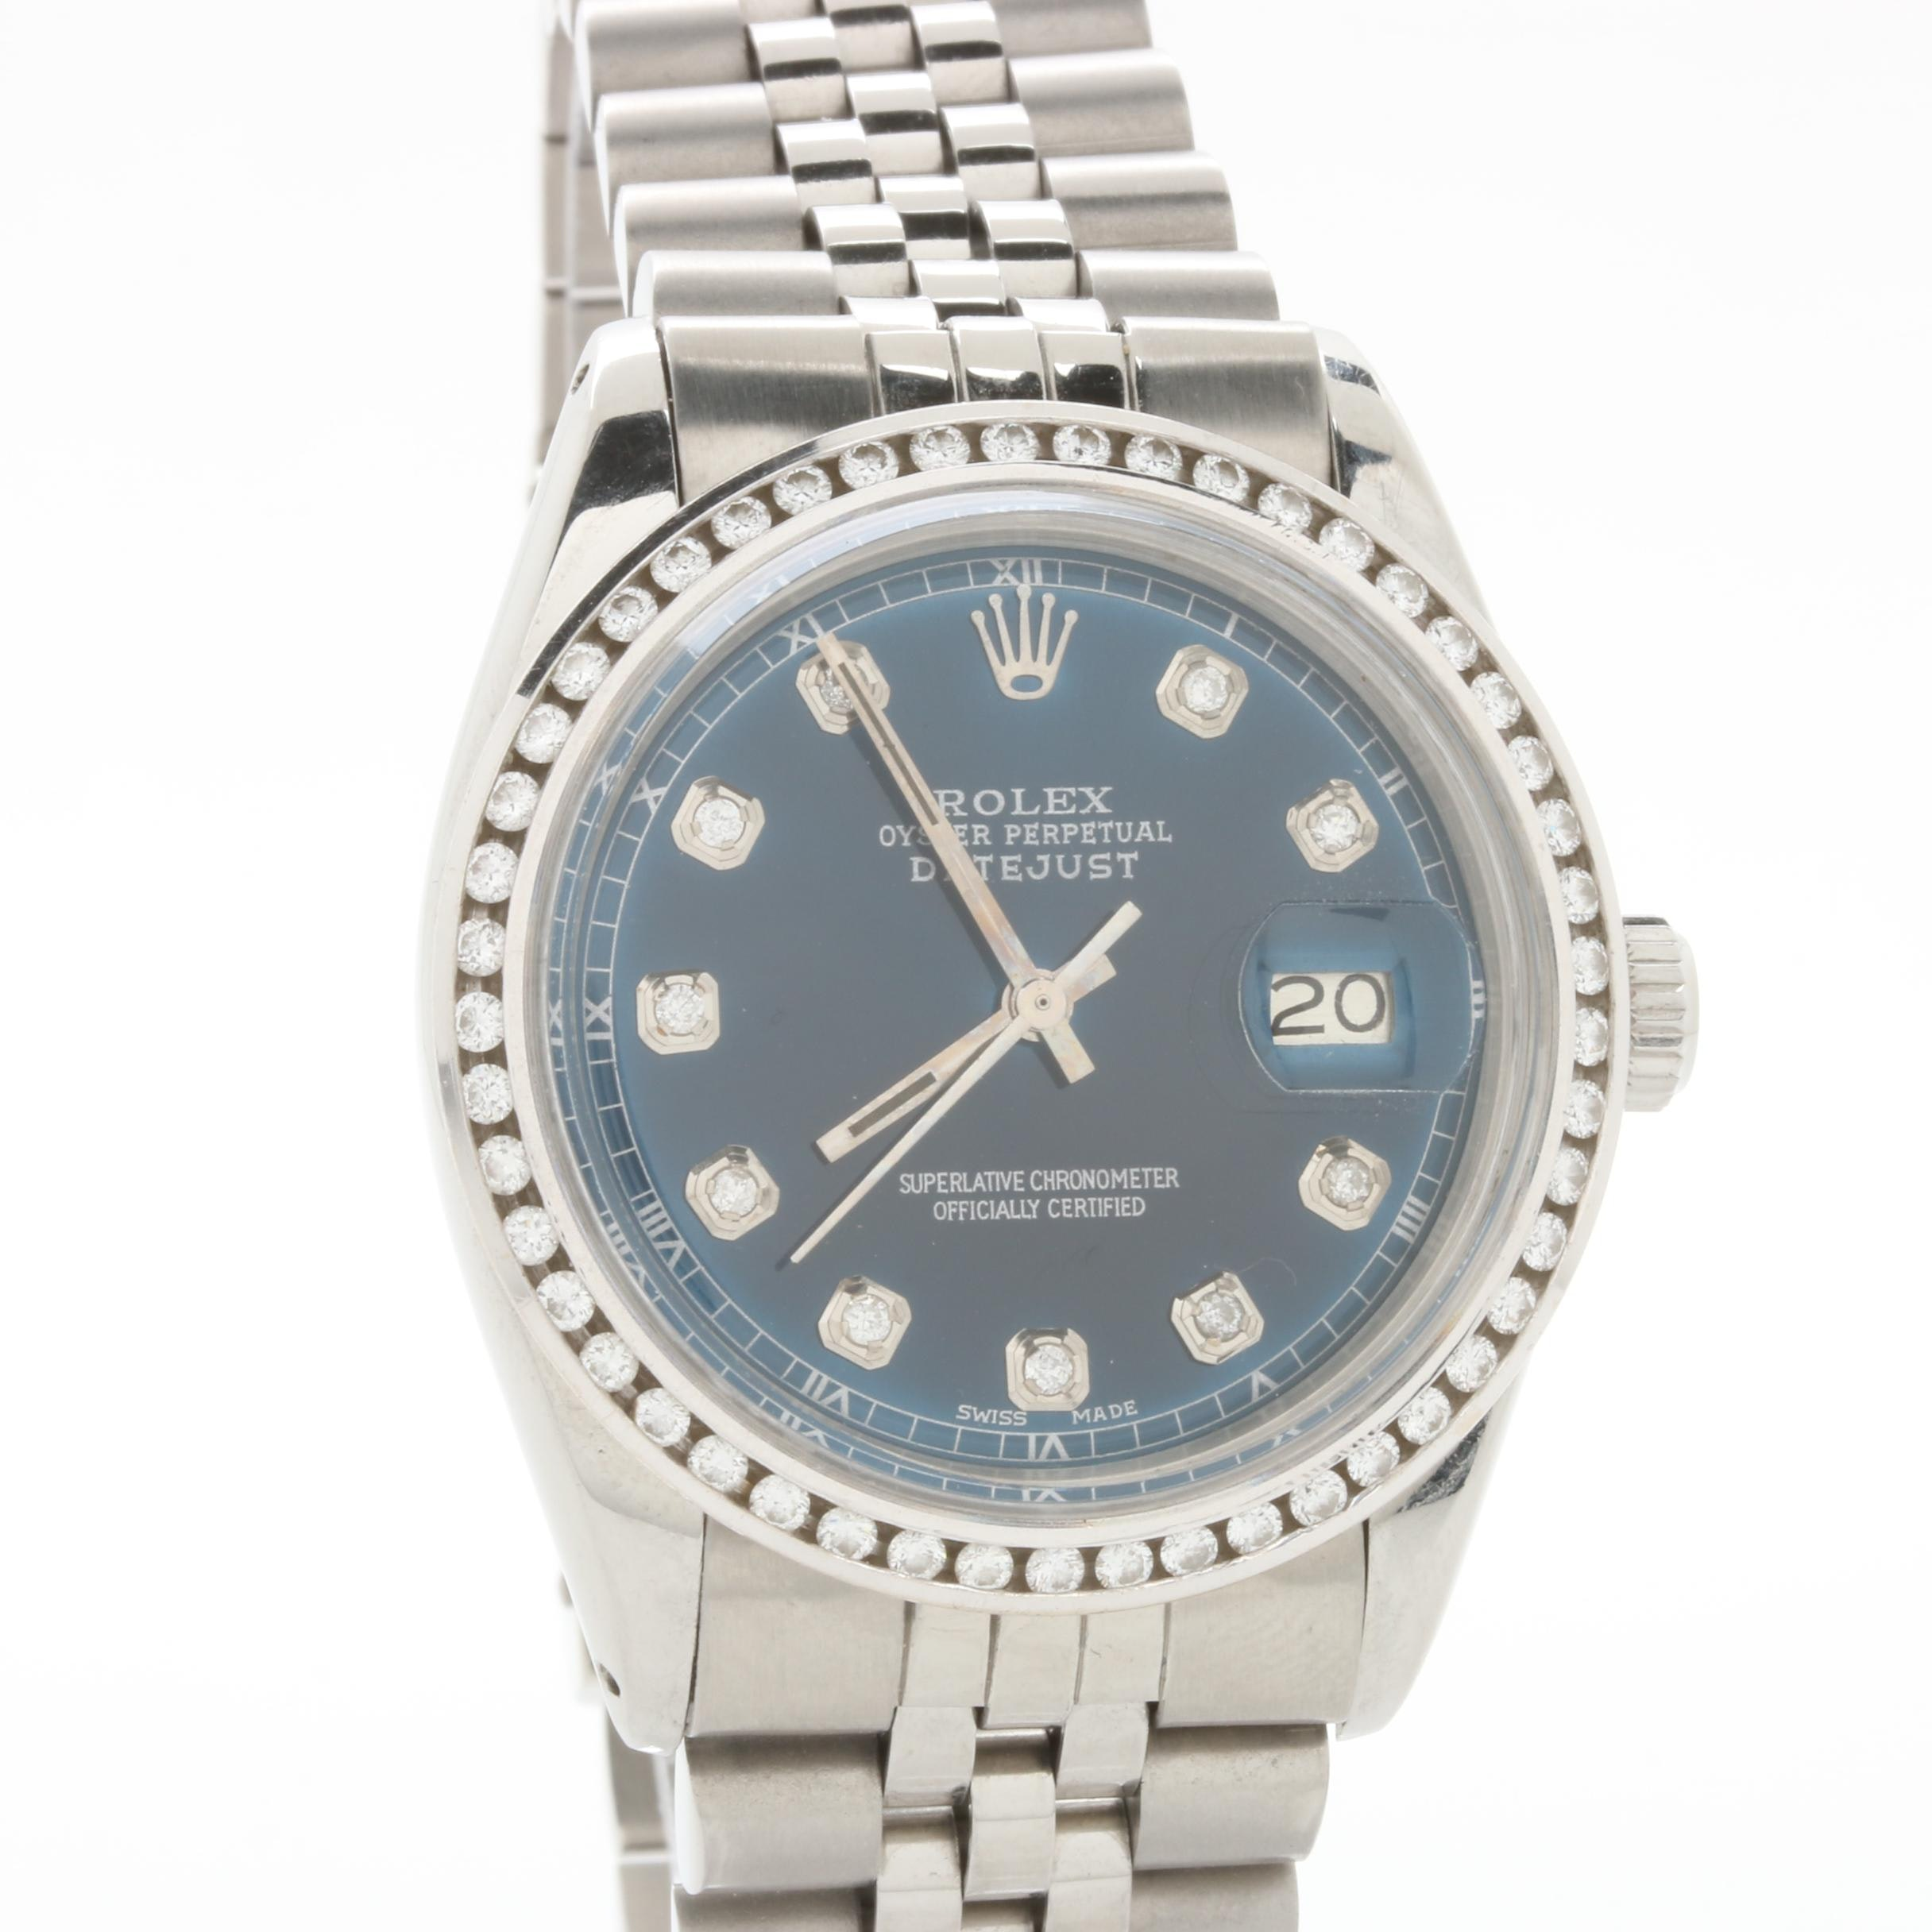 Rolex Stainless Steel Datejust 1.27 CTW Diamond Blue Dial Wristwatch